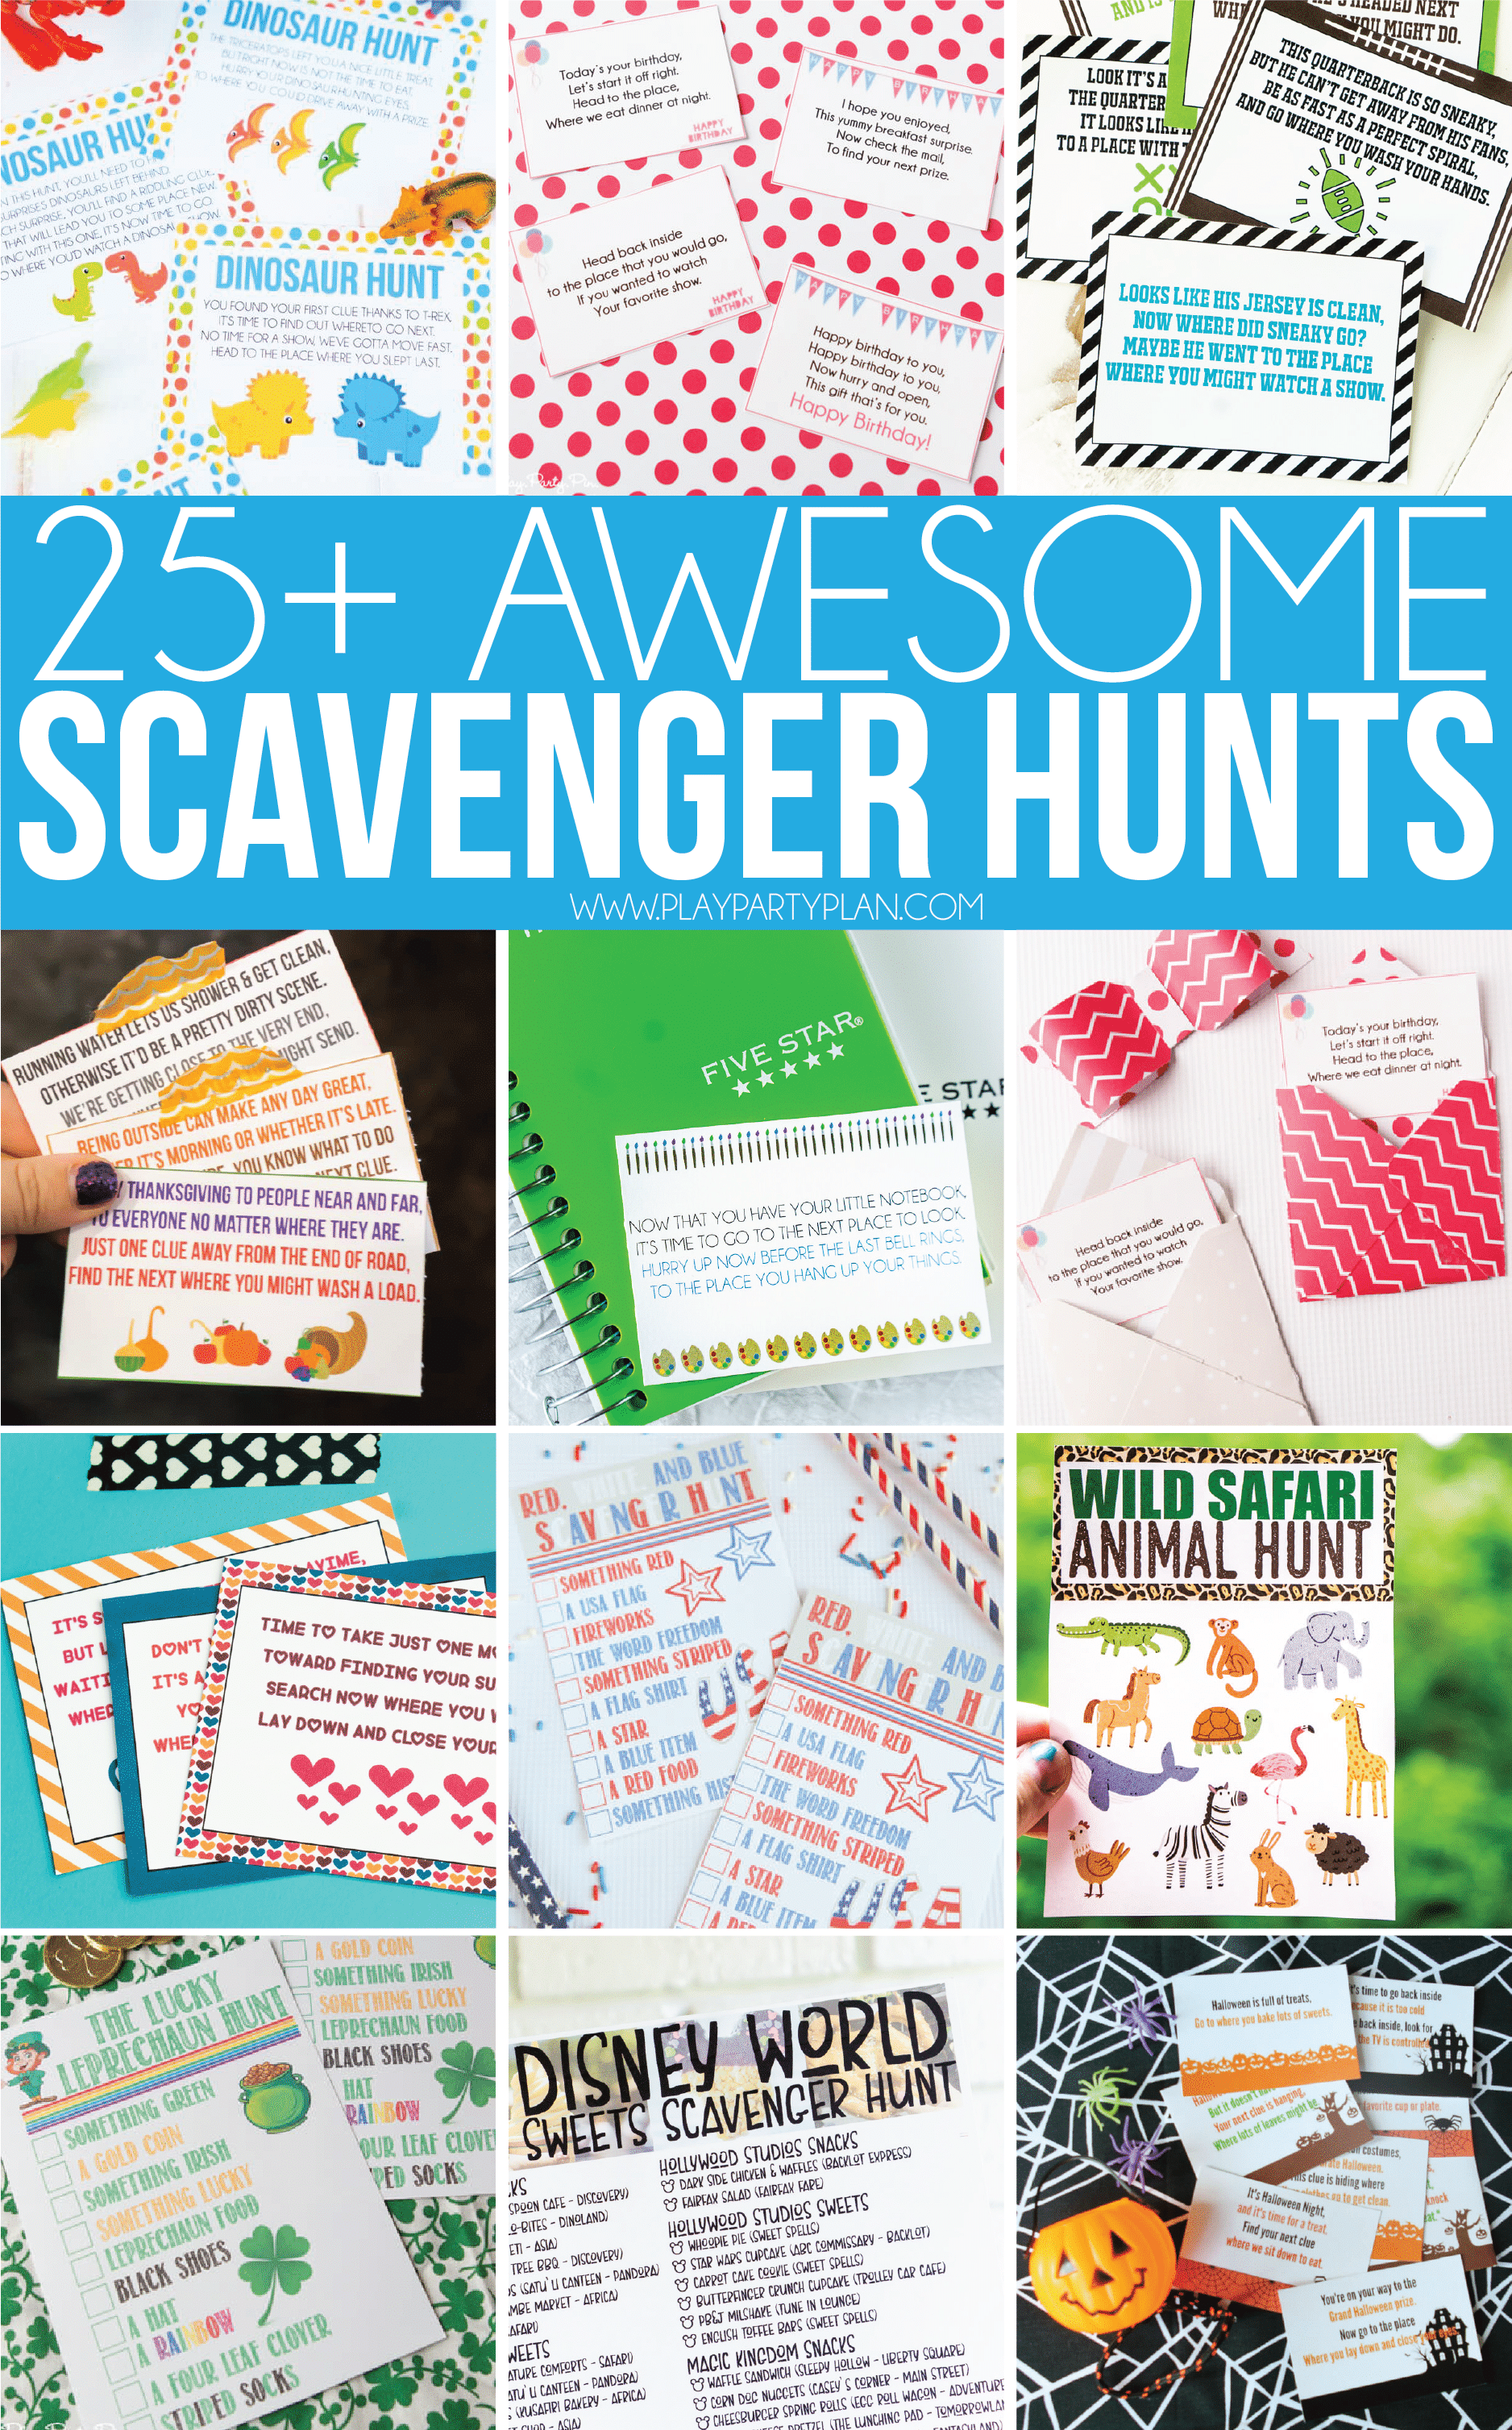 24+ Awesome Scavenger Hunt Ideas for All Ages - Play Party Plan